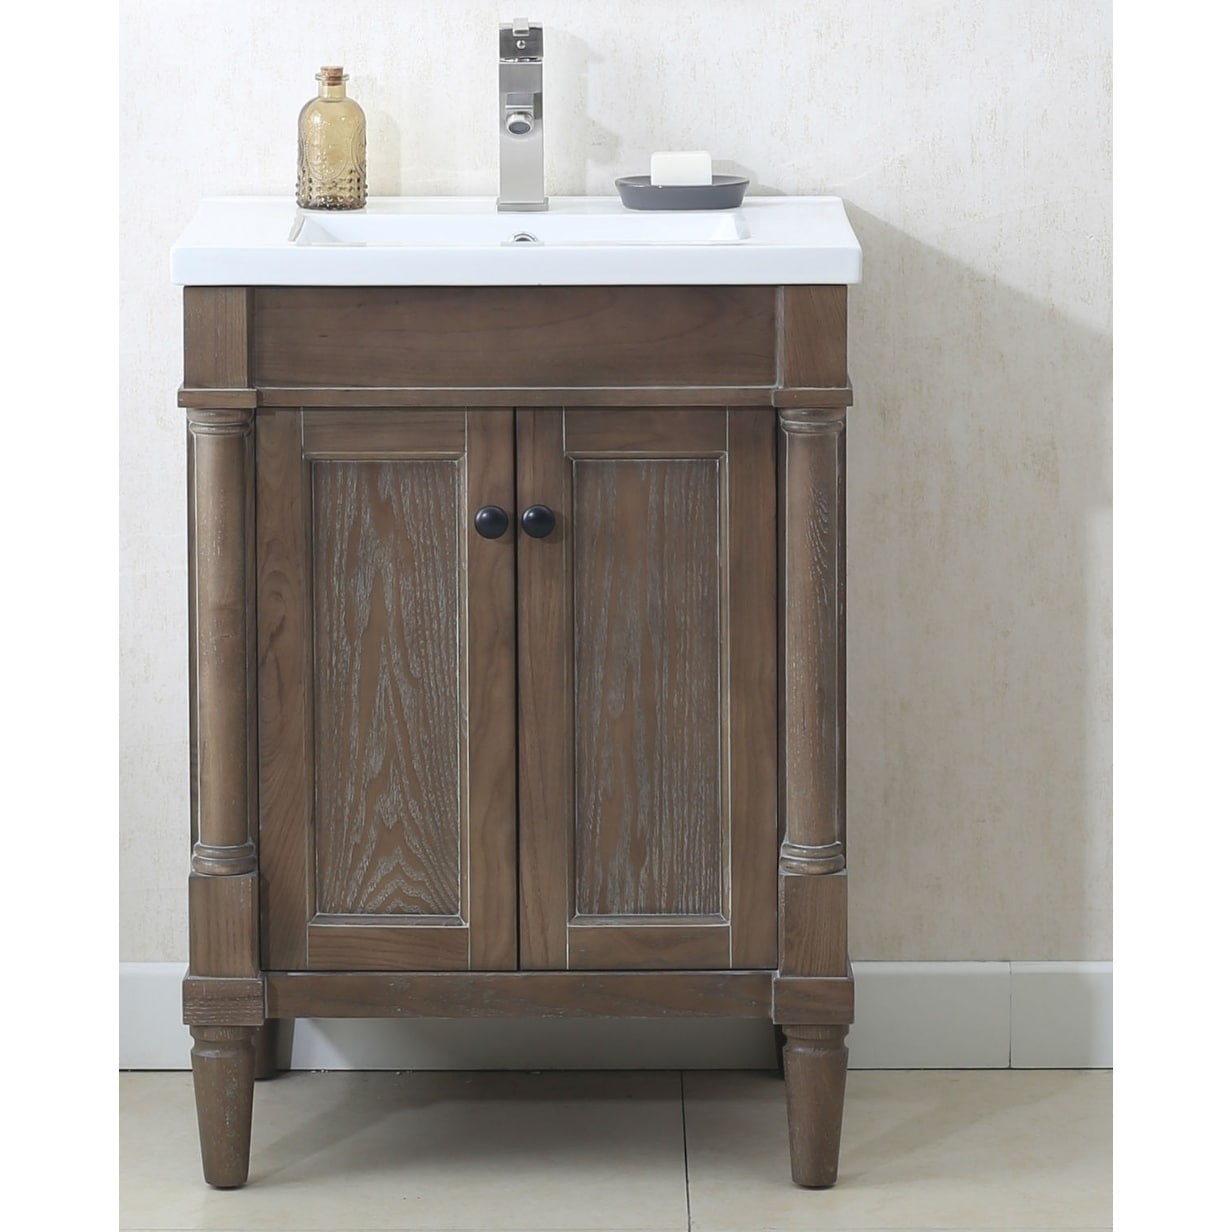 Bathroom Vanity In Weathered Gray With Porcelain Top